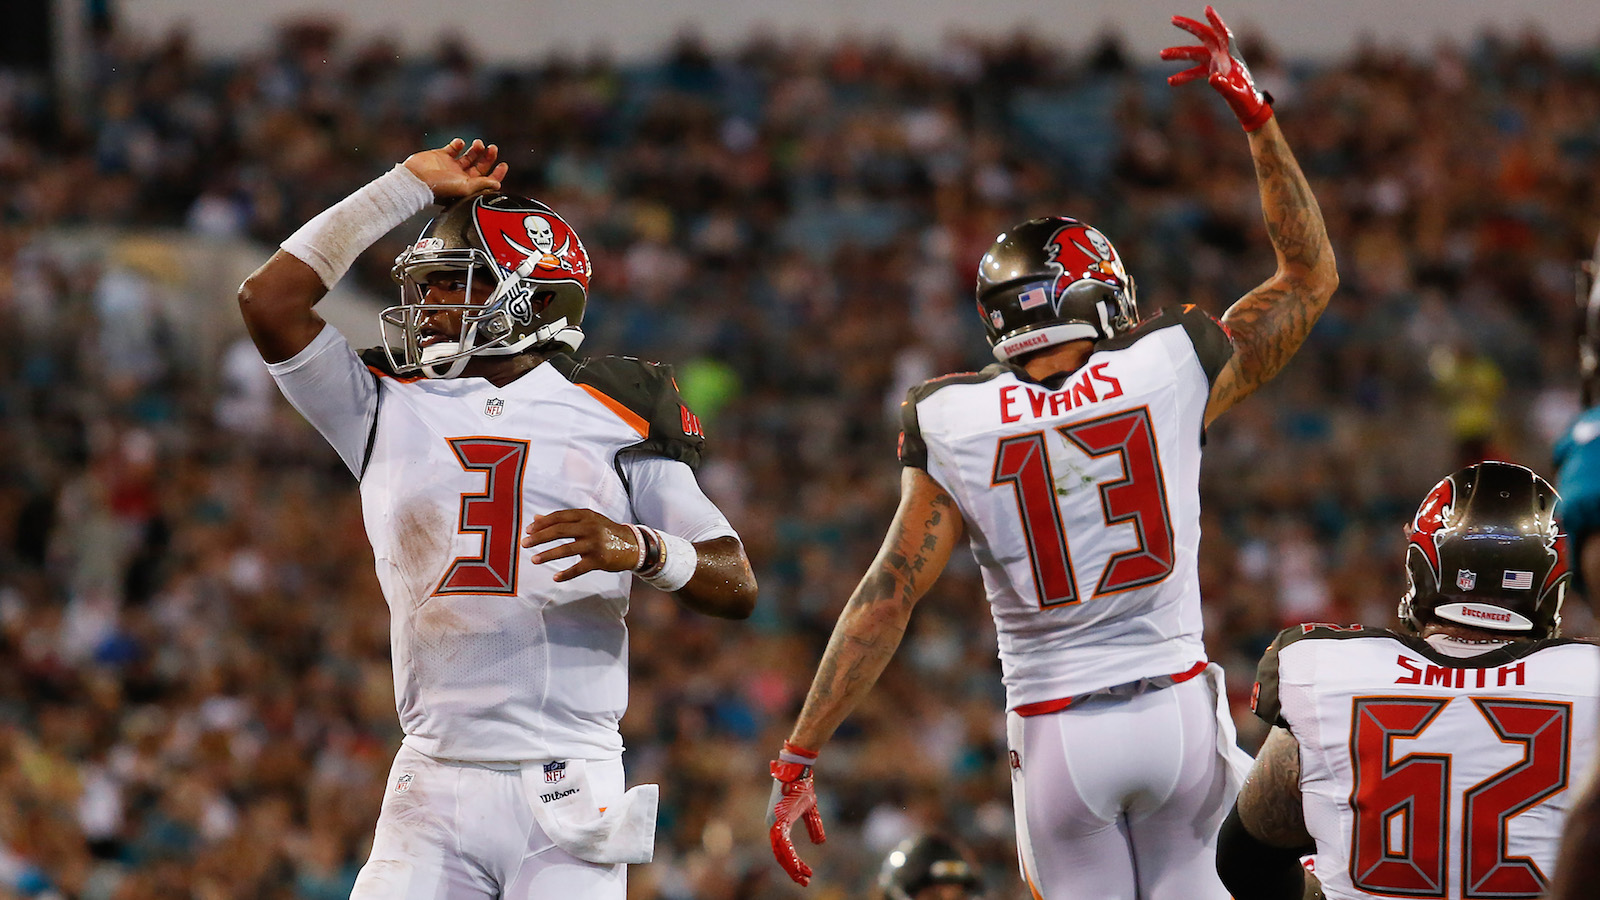 Aug 20, 2016; Jacksonville, FL, USA;  Tampa Bay Buccaneers quarterback Jameis Winston (3) and wide receiver Mike Evans (13) celebrate after a touchdown in the second quarter against the Jacksonville Jaguars at EverBank Field. Mandatory Credit: Logan Bowles-USA TODAY Sports